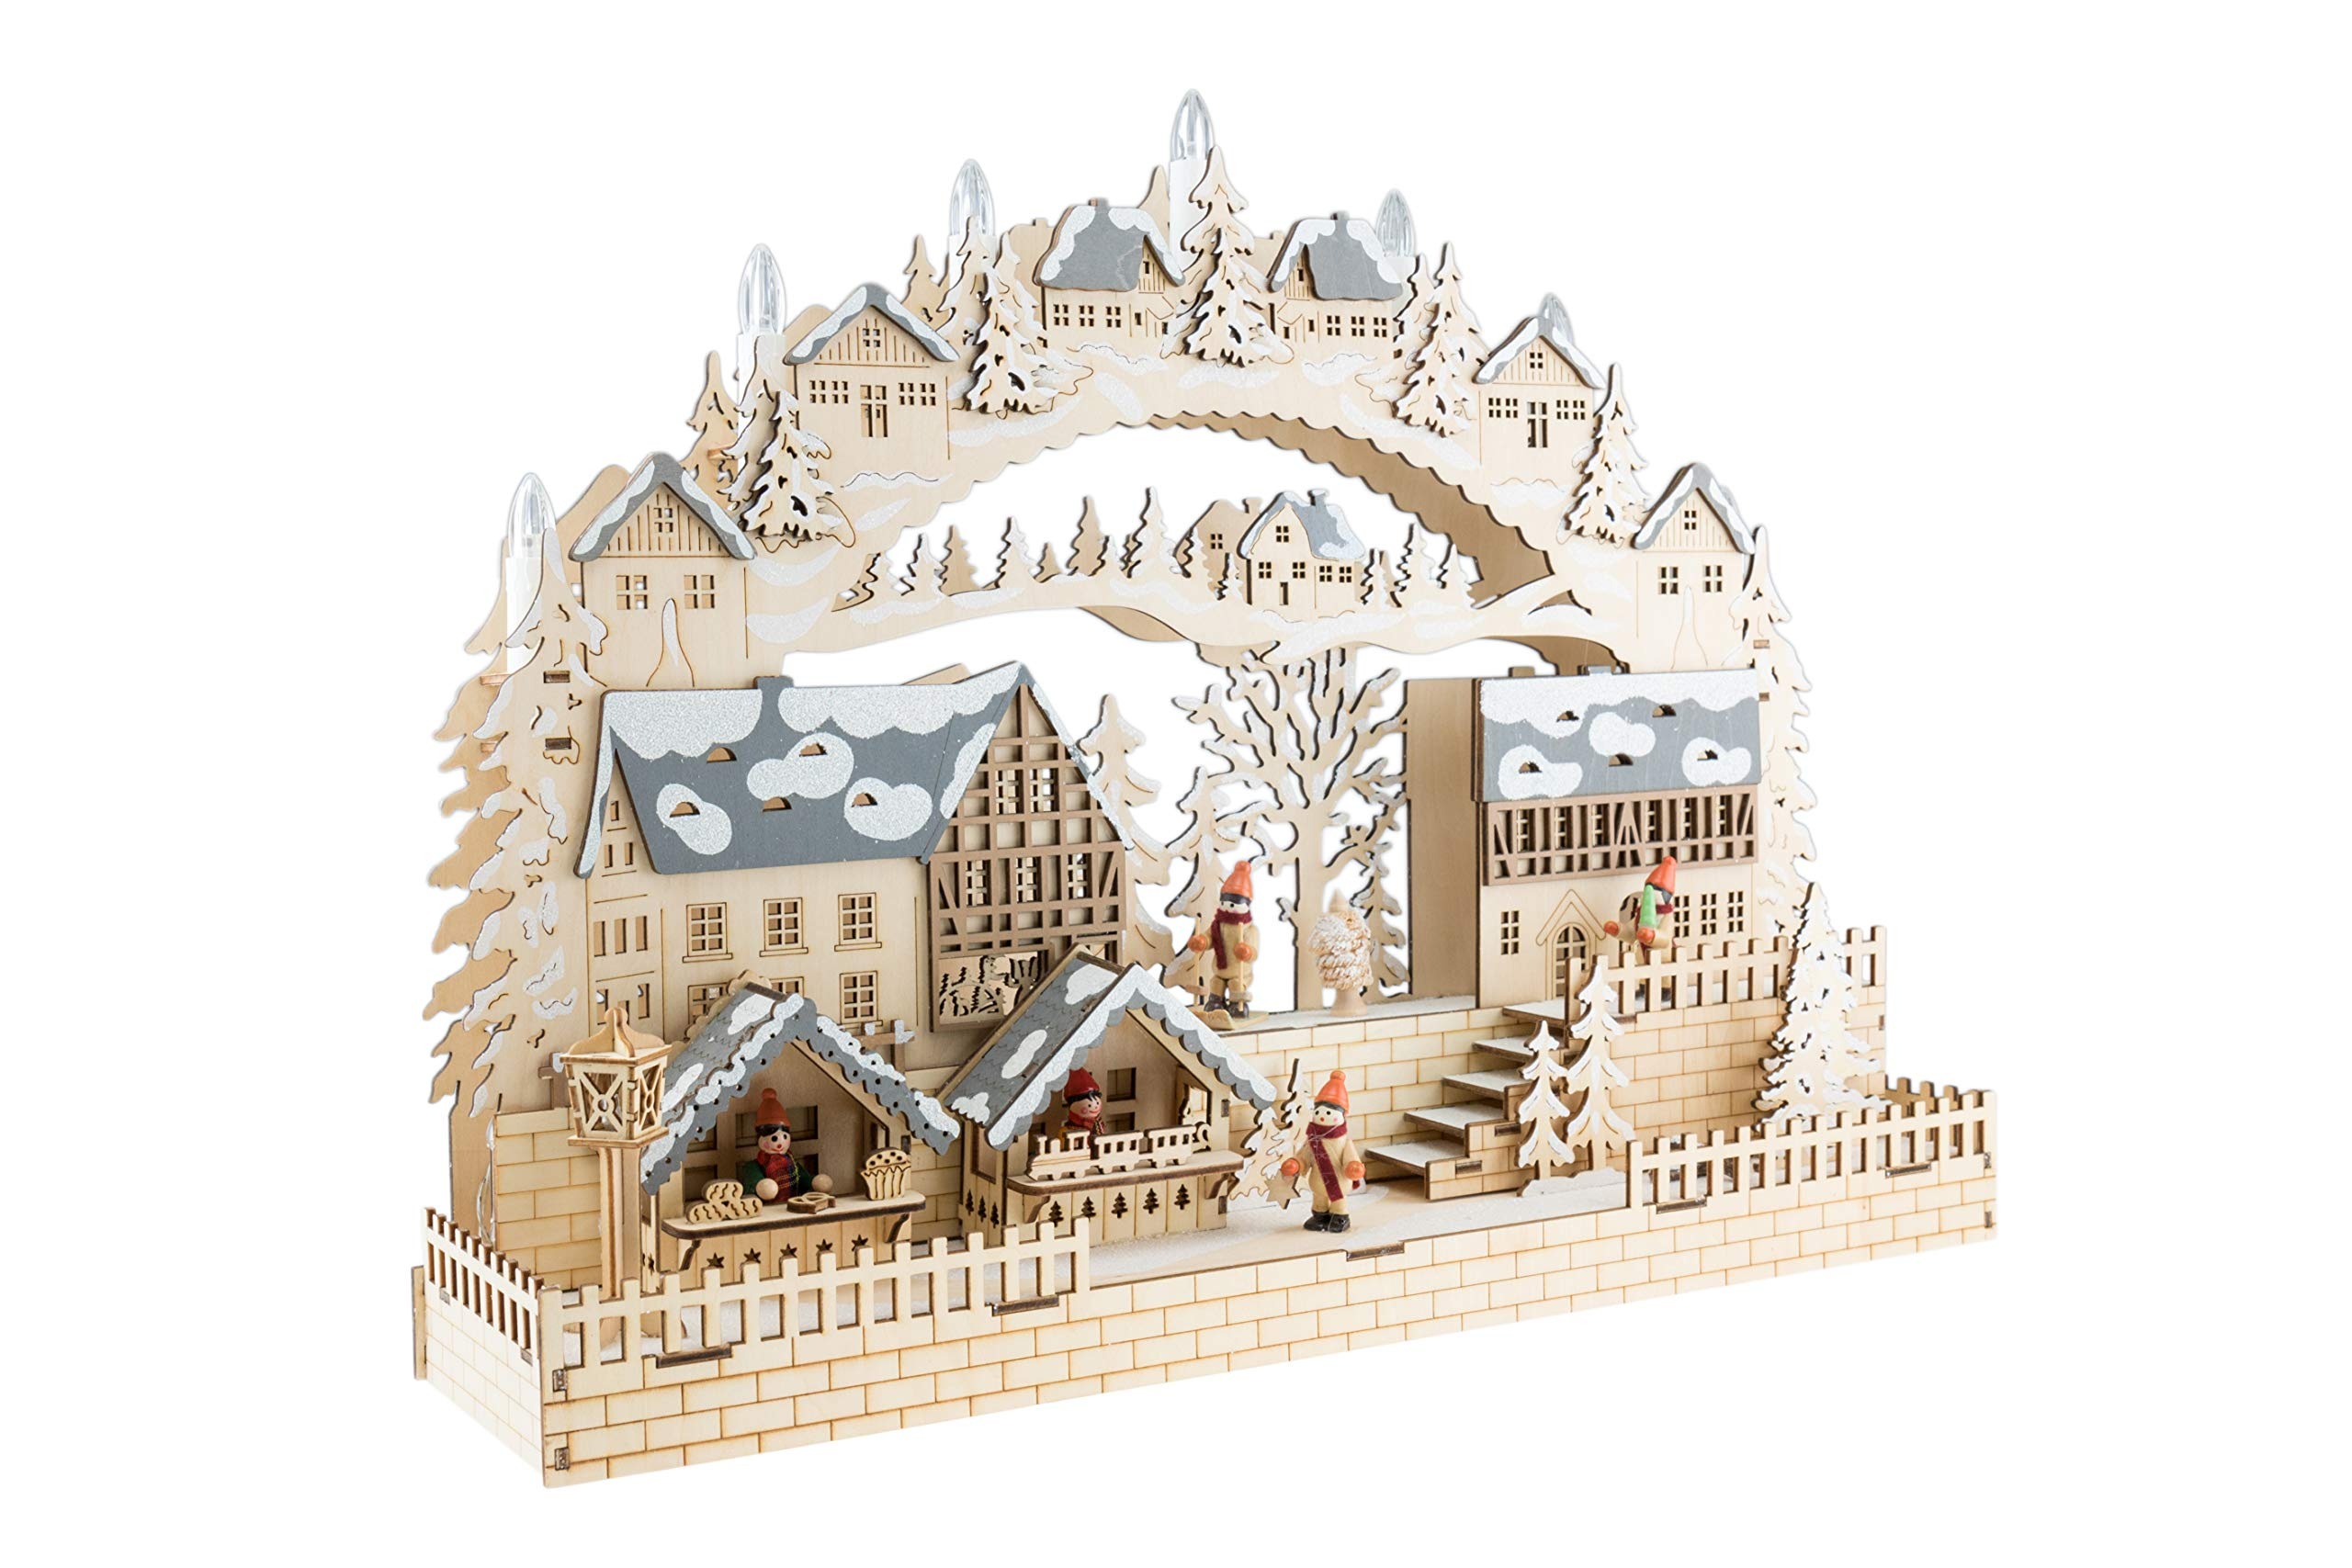 Clever Creations Traditional Wooden Village Christmas Decoration | Festive Christmas Village with Battery Operated LED Christmas Lights | Detailed Wooden Decoration with Winter Snow and Christmas Tree